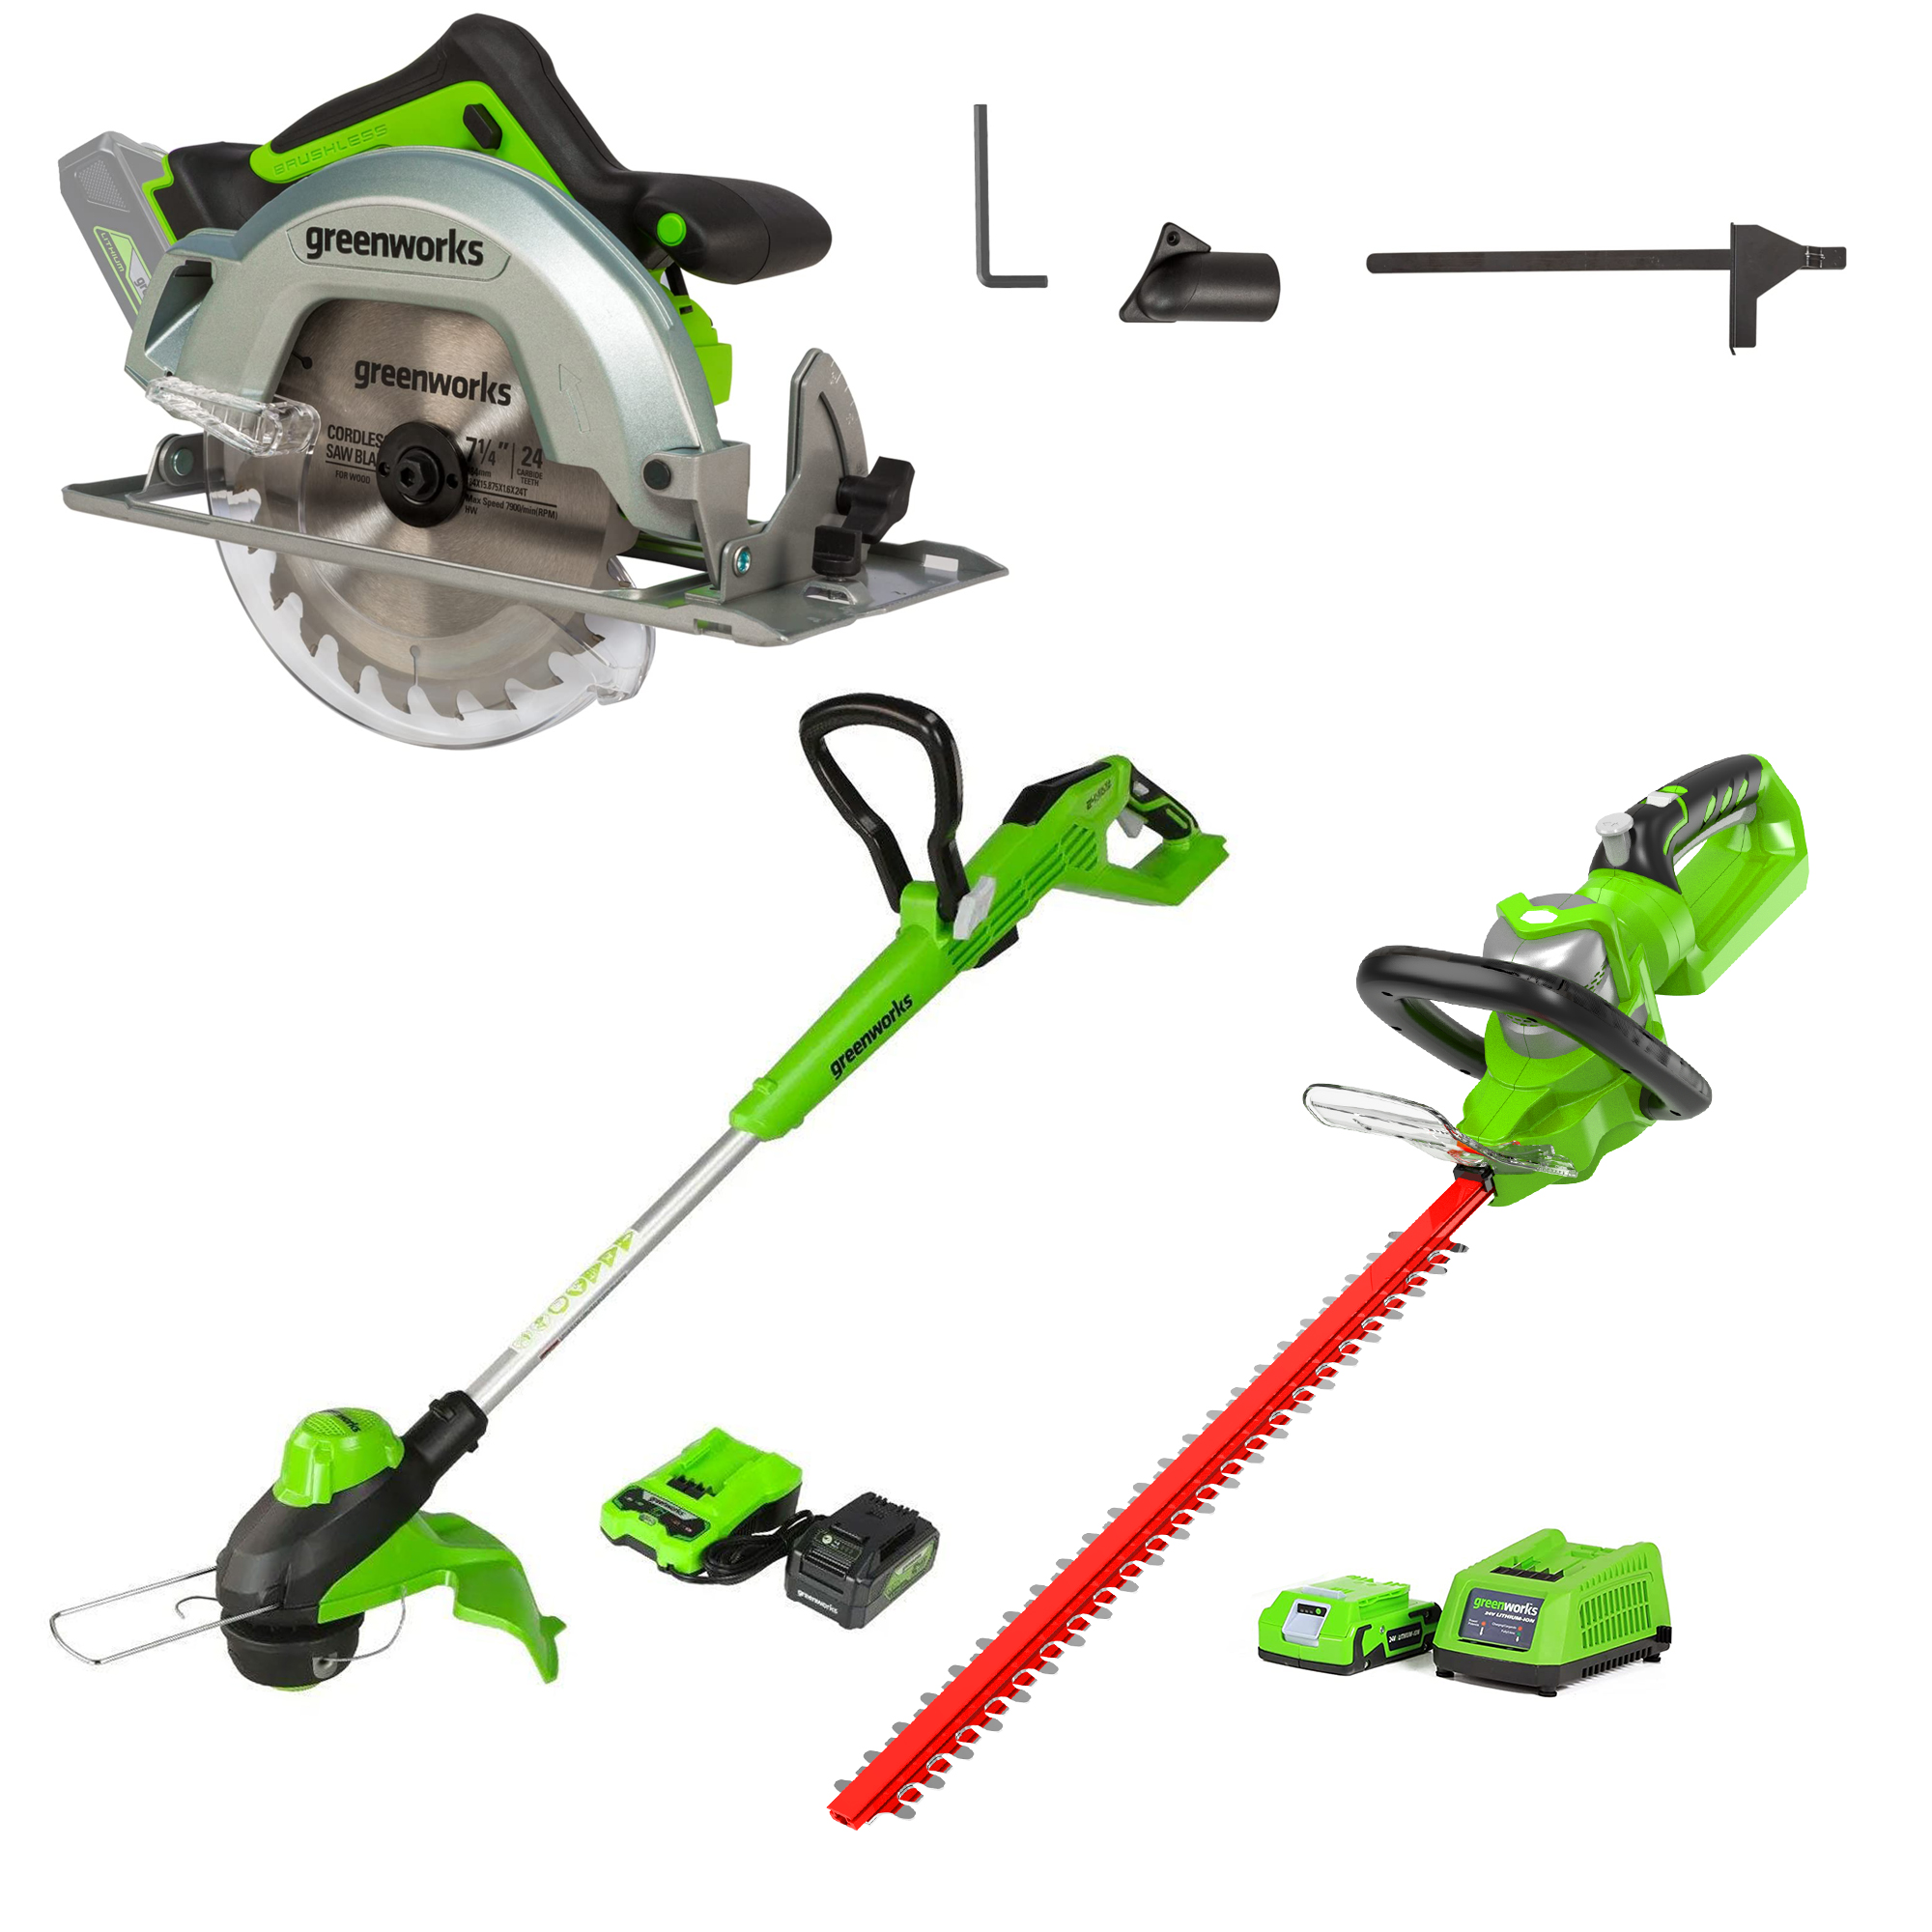 24V 13-Inch String Trimmer, 24V 22-Inch Hedge Trimmer and 24V Brushless 7.25-inch Circular Saw Was: $229.99 Now: $195.50.